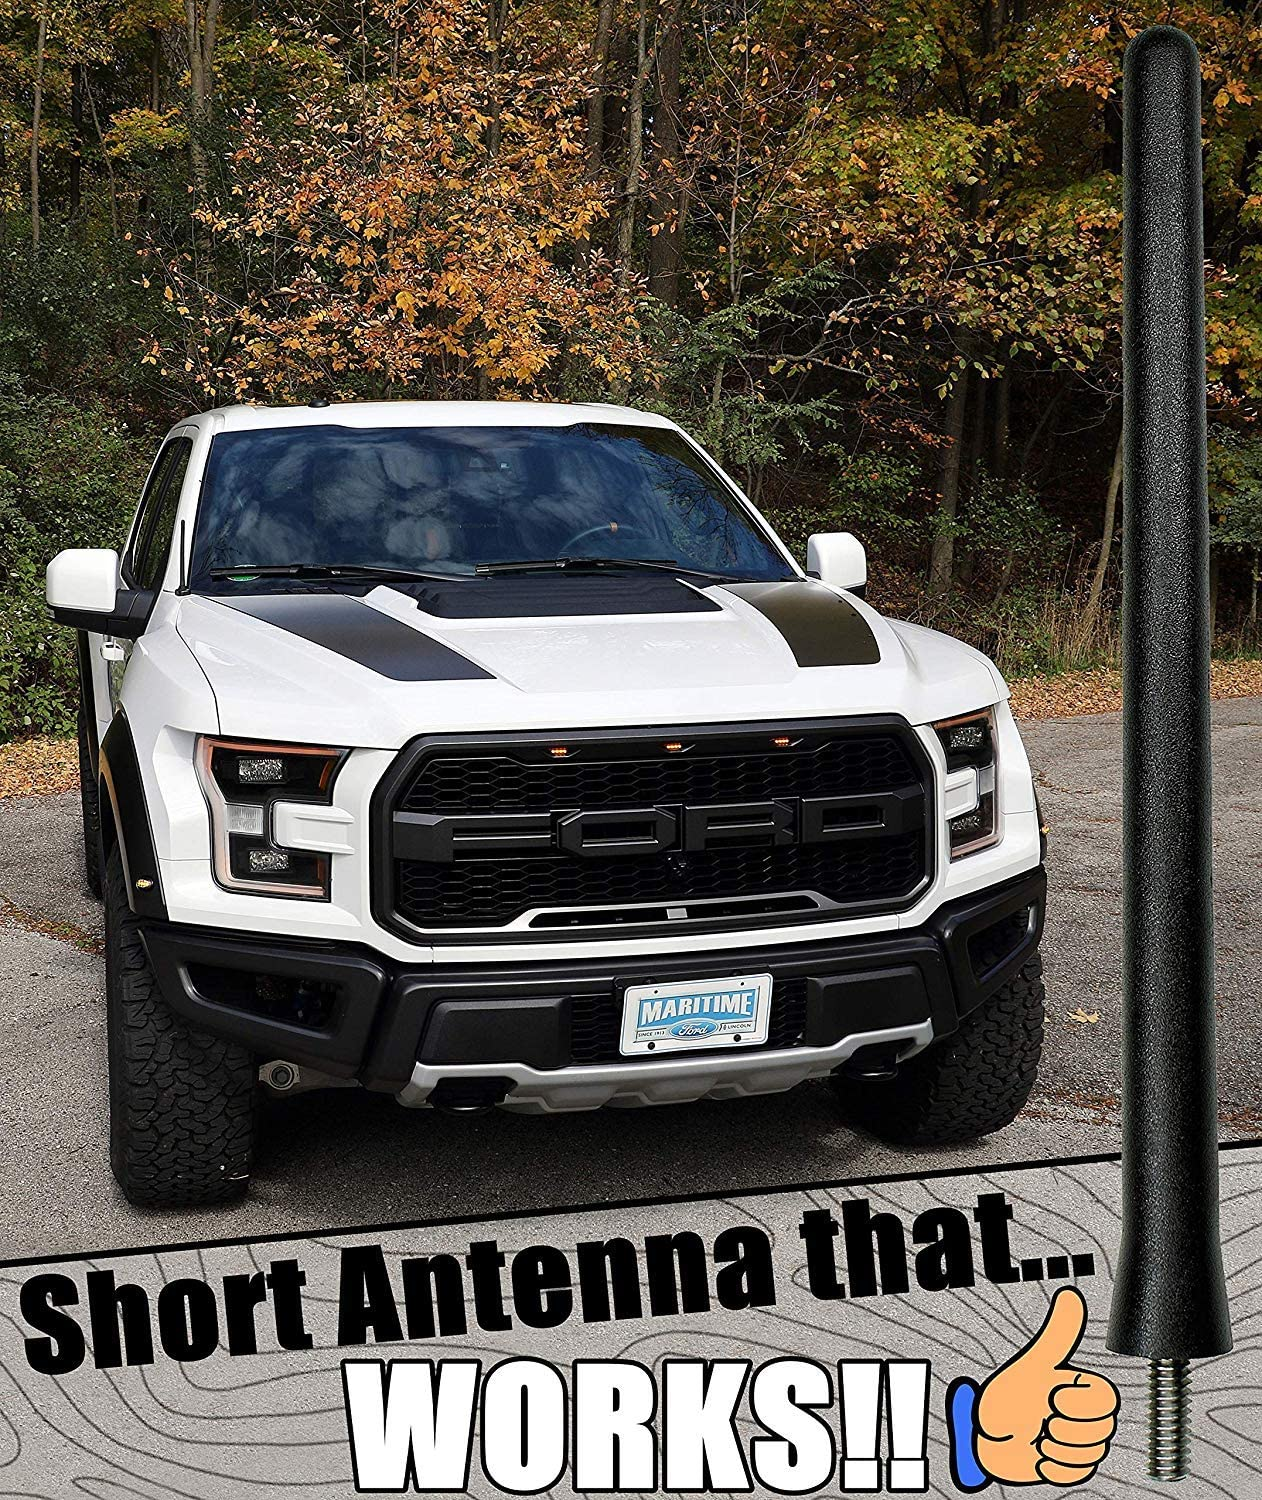 4.8 Inches Designed for Optimized FM//AM Reception TEKK Short Antenna Compatible with 08 to 2012 Ford Escape